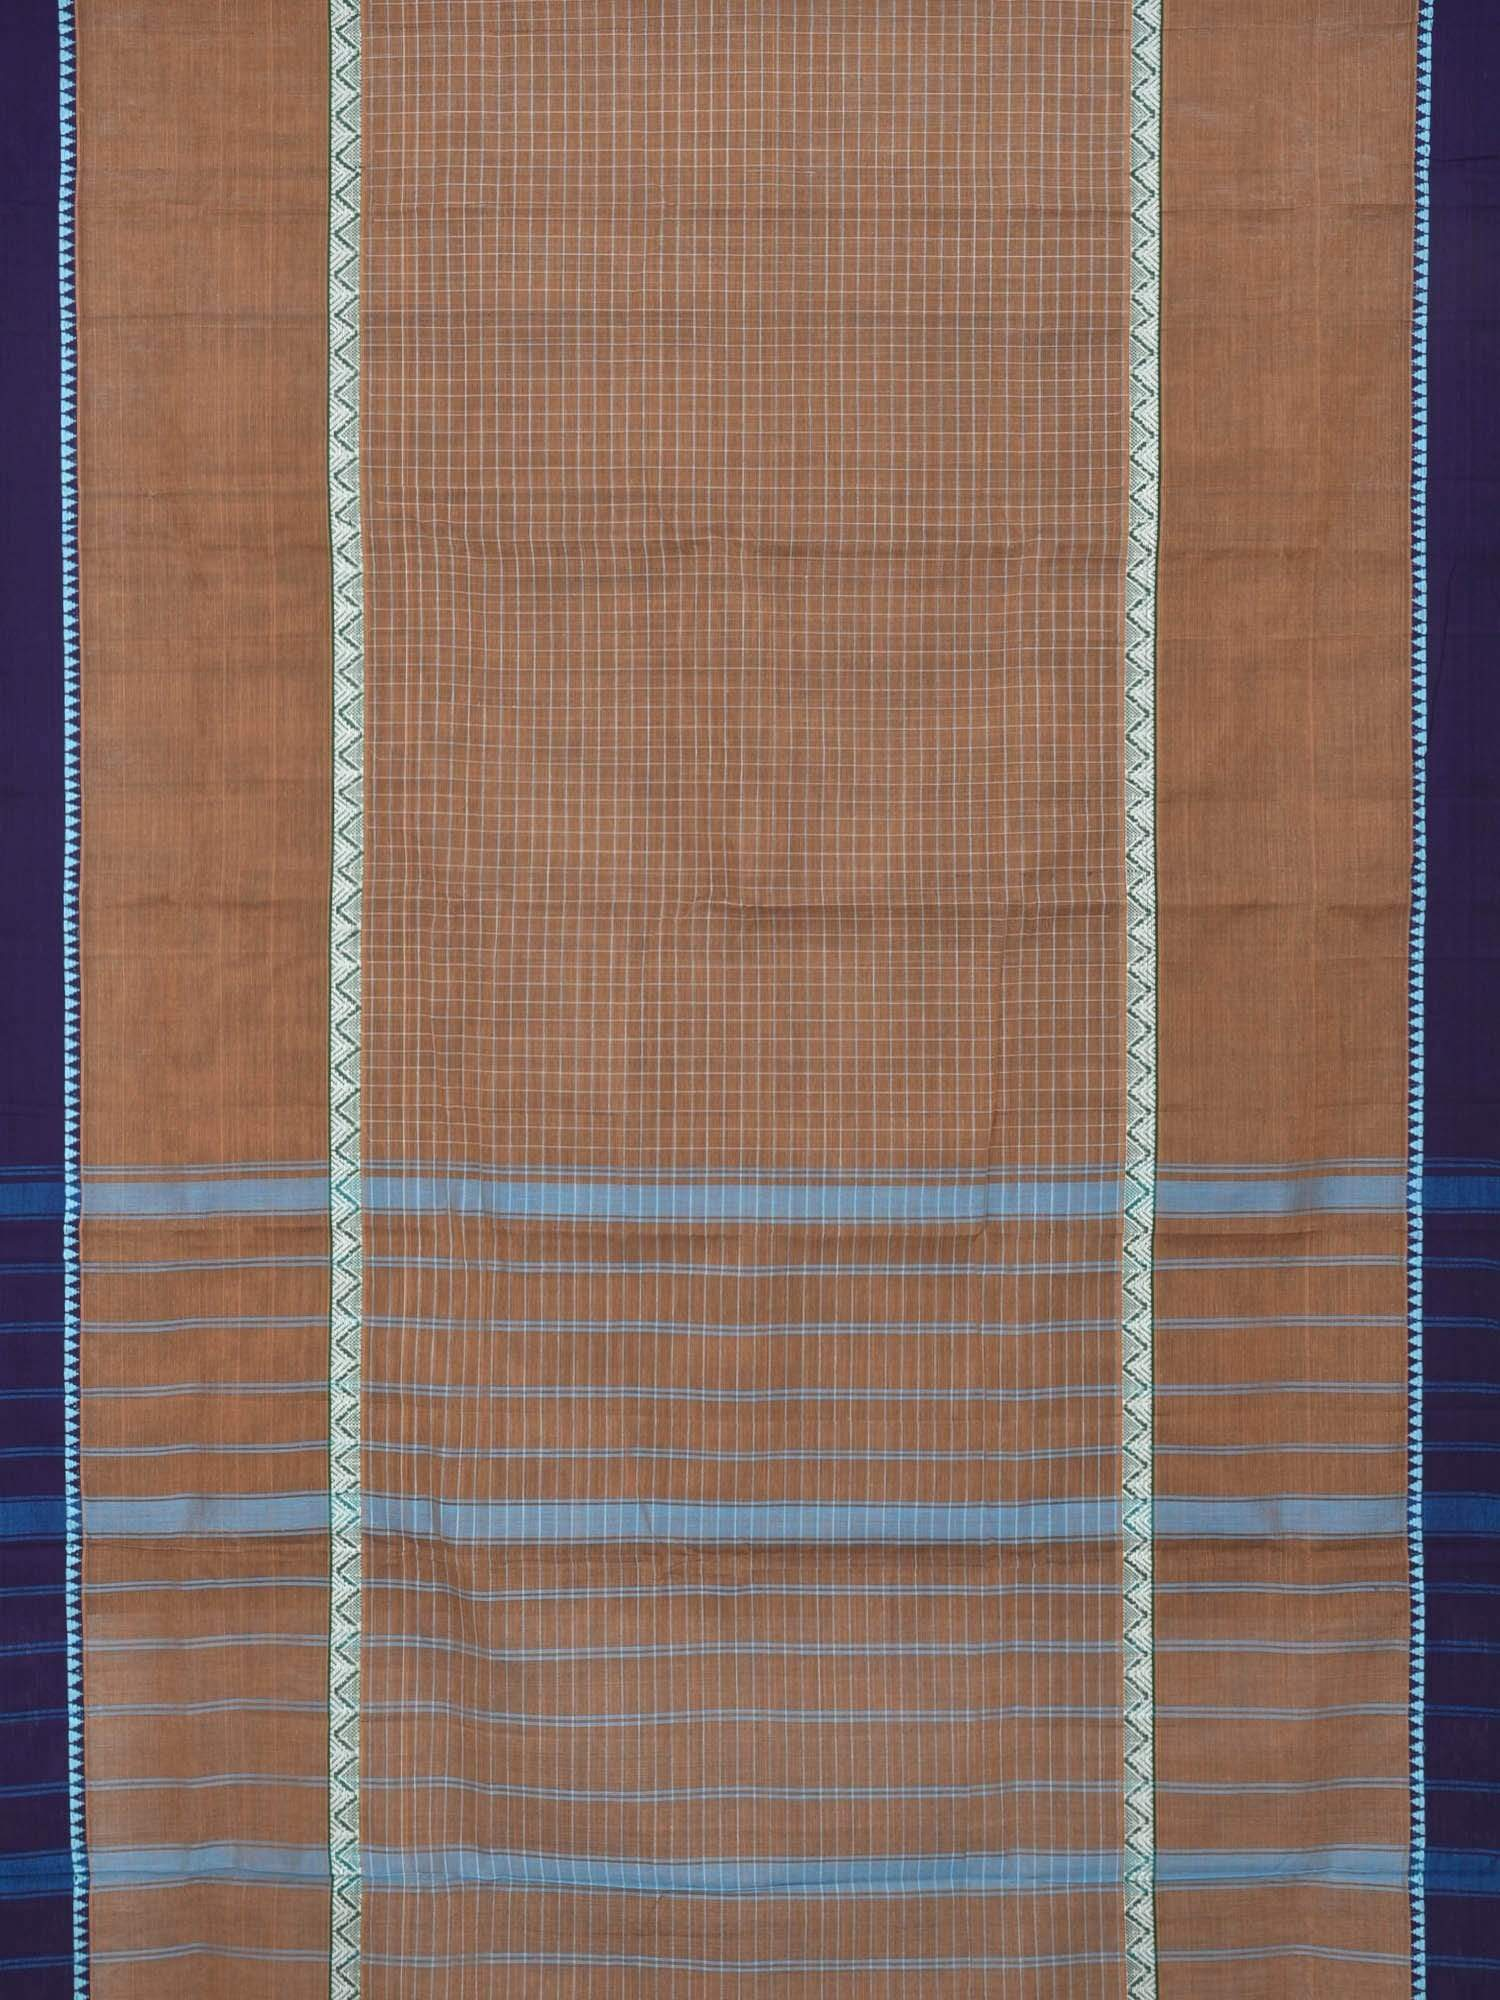 Light Brown Narayanpet Cotton Handloom Saree with Checks Design No Blouse np0211